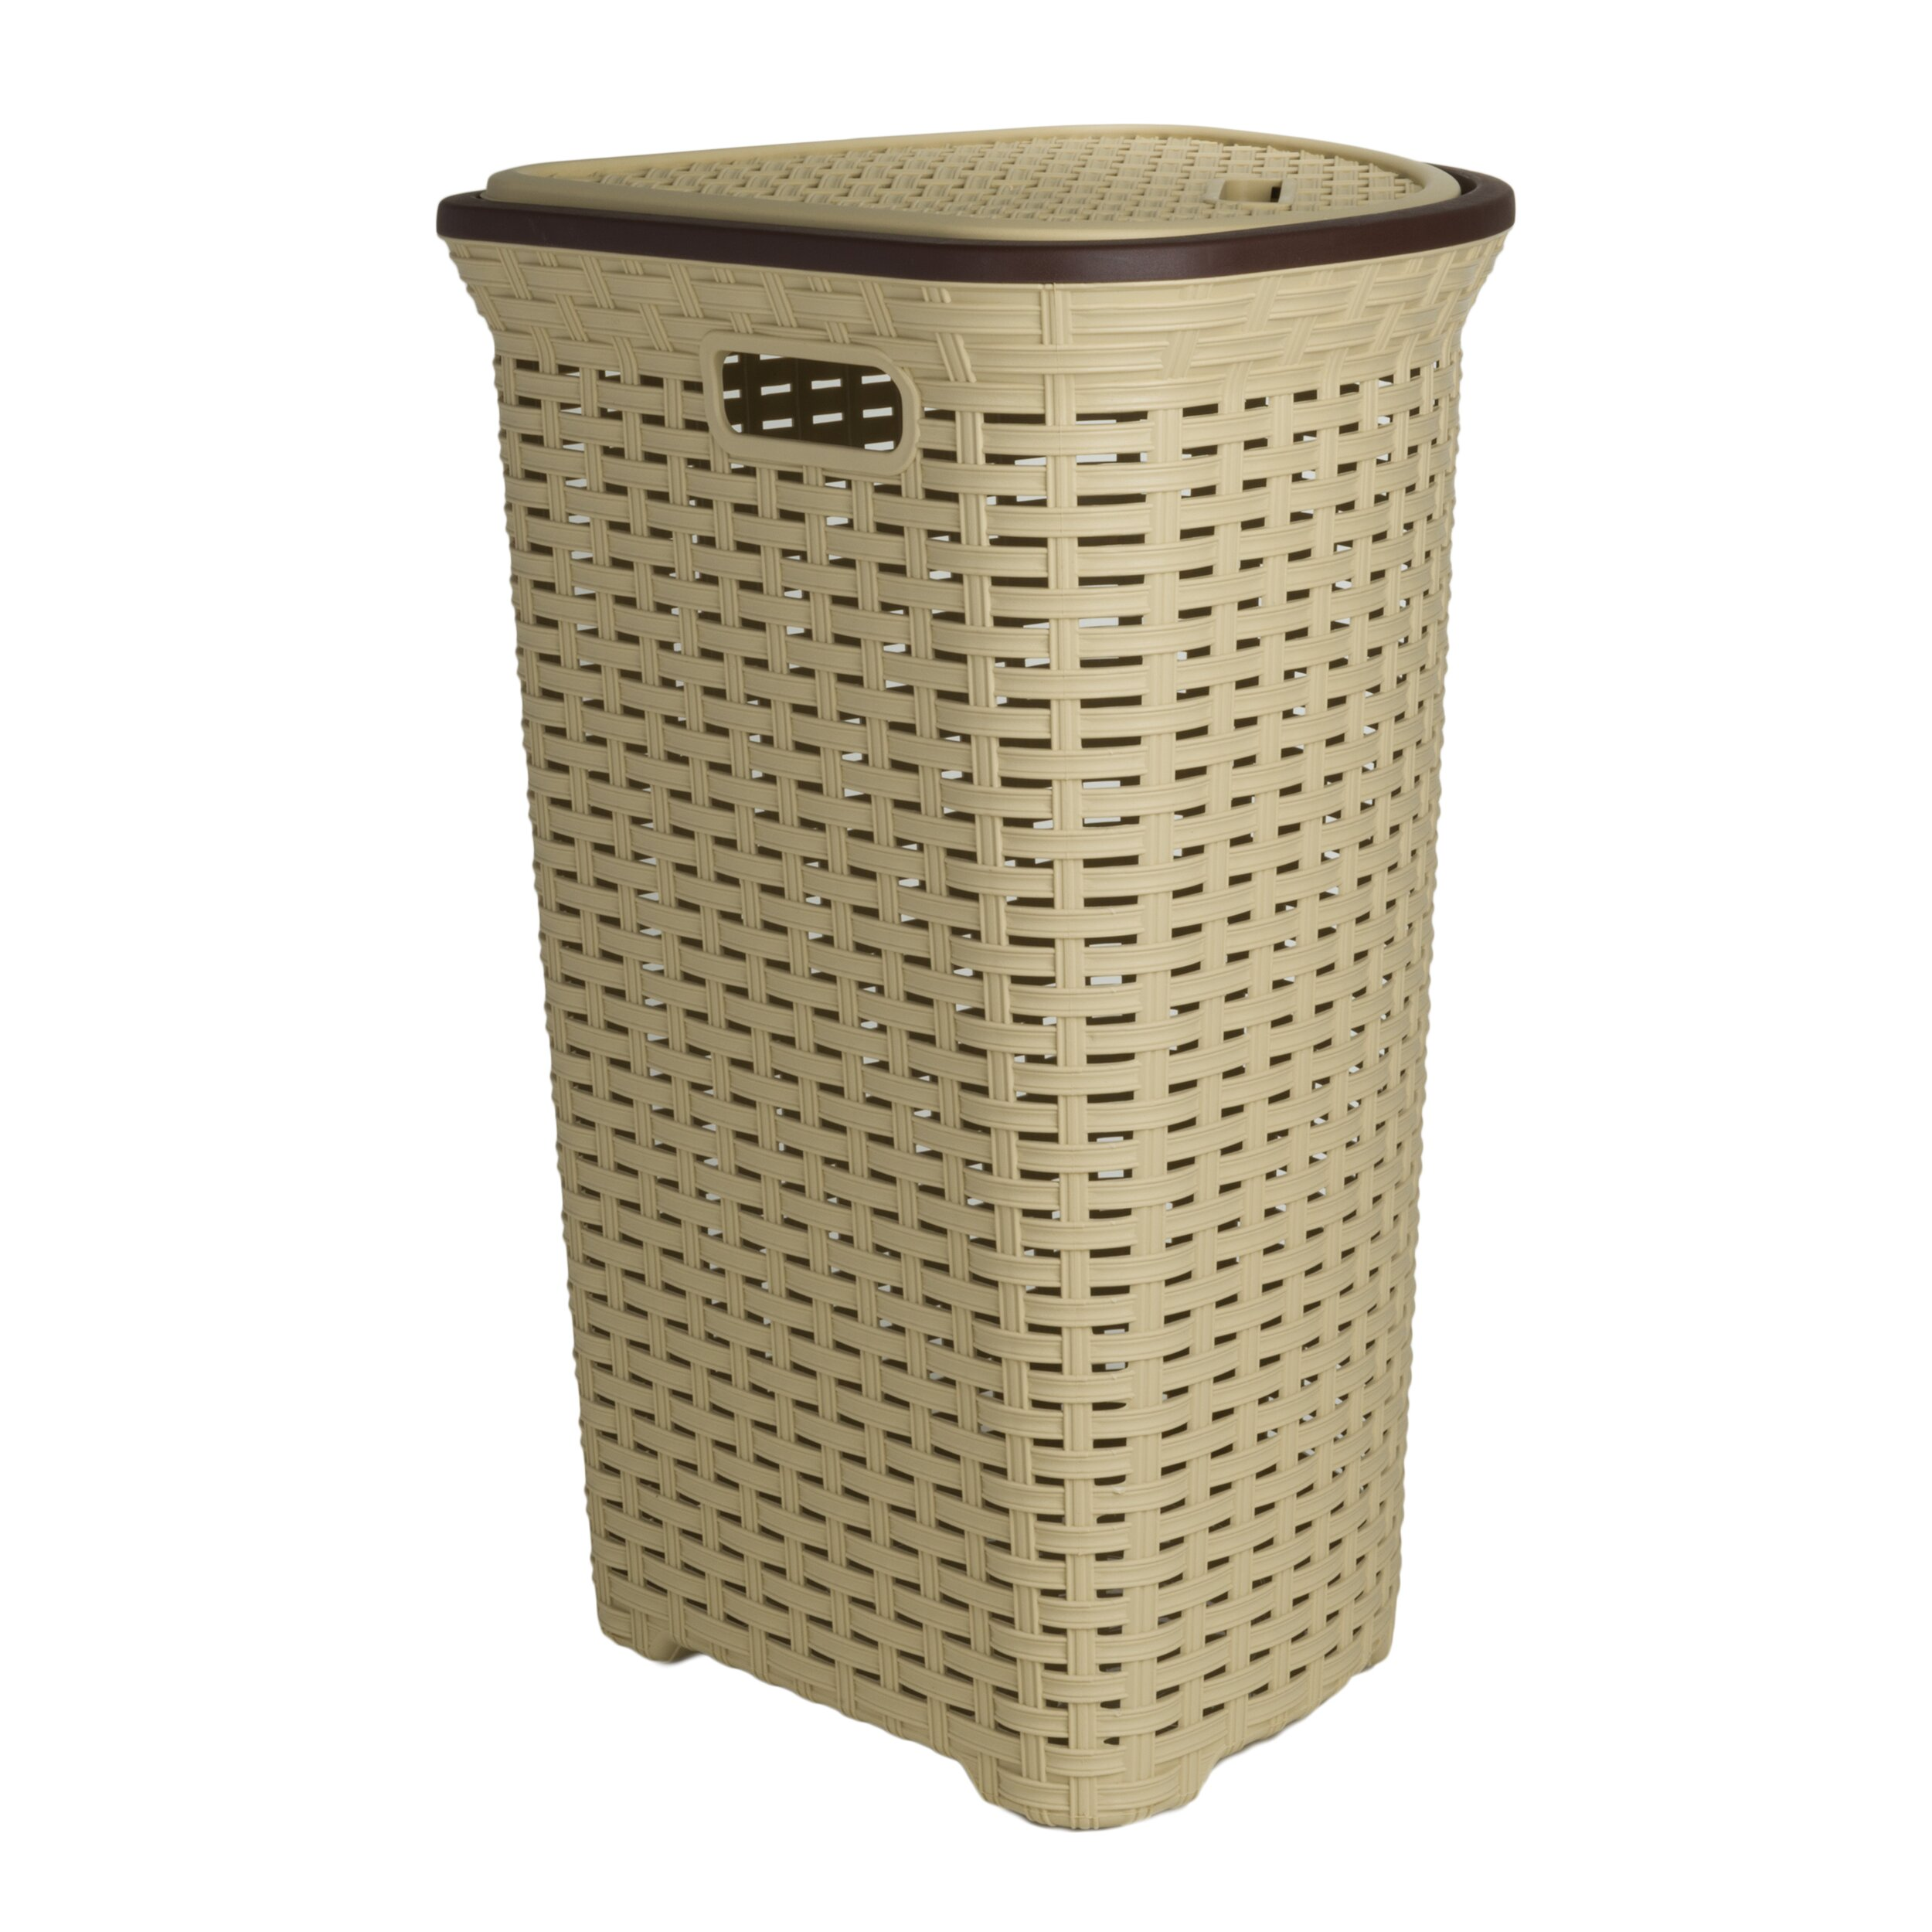 Superior performance superio brand wicker style corner laundry hamper reviews wayfair - Wicker clothes hamper ...